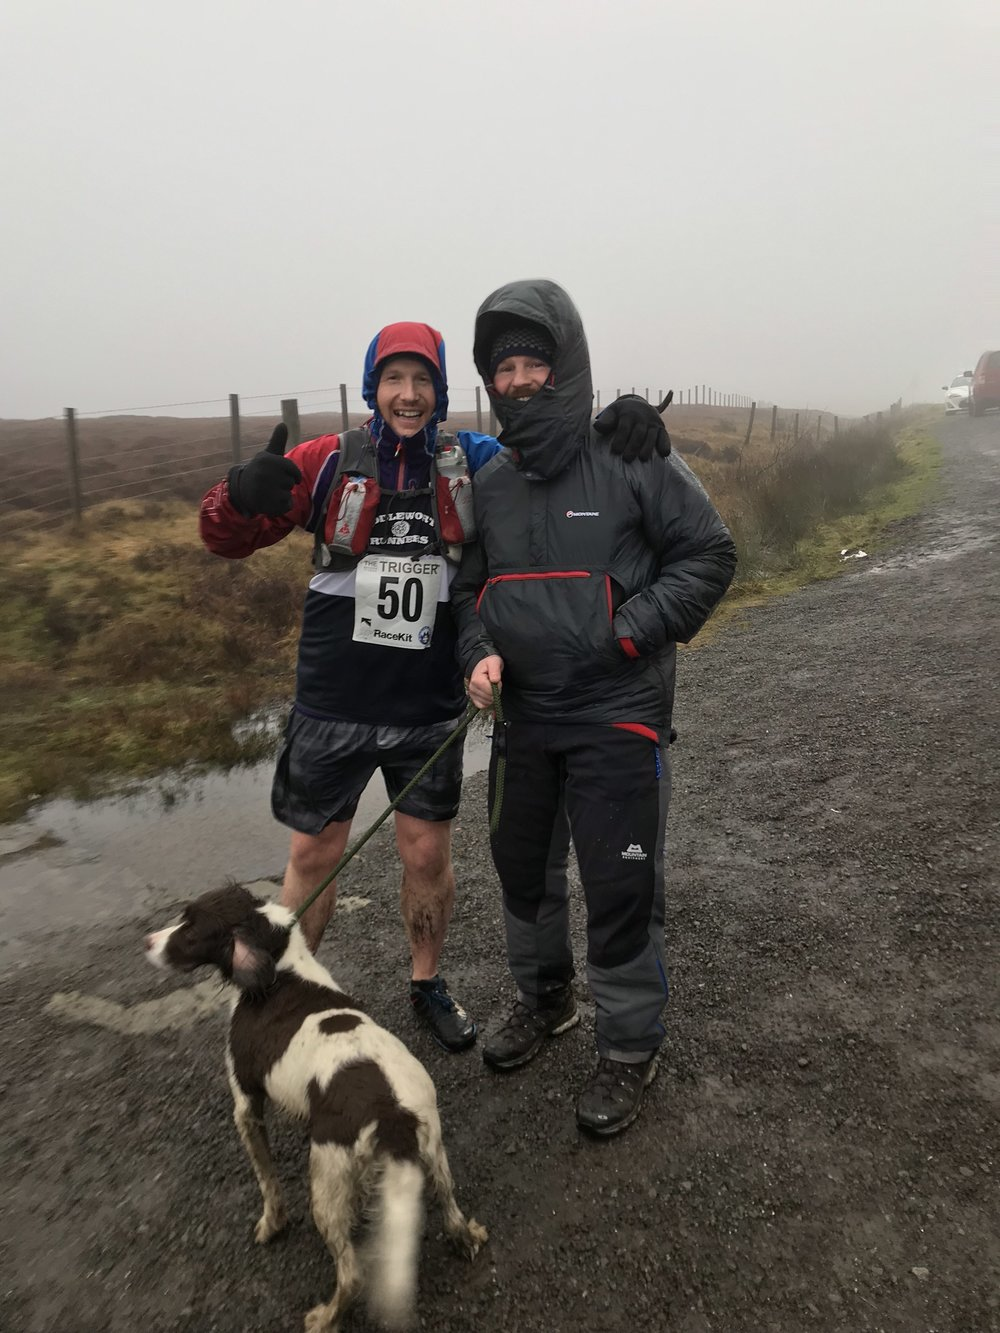 Ryan and Poppy offering support at the Snake Pass